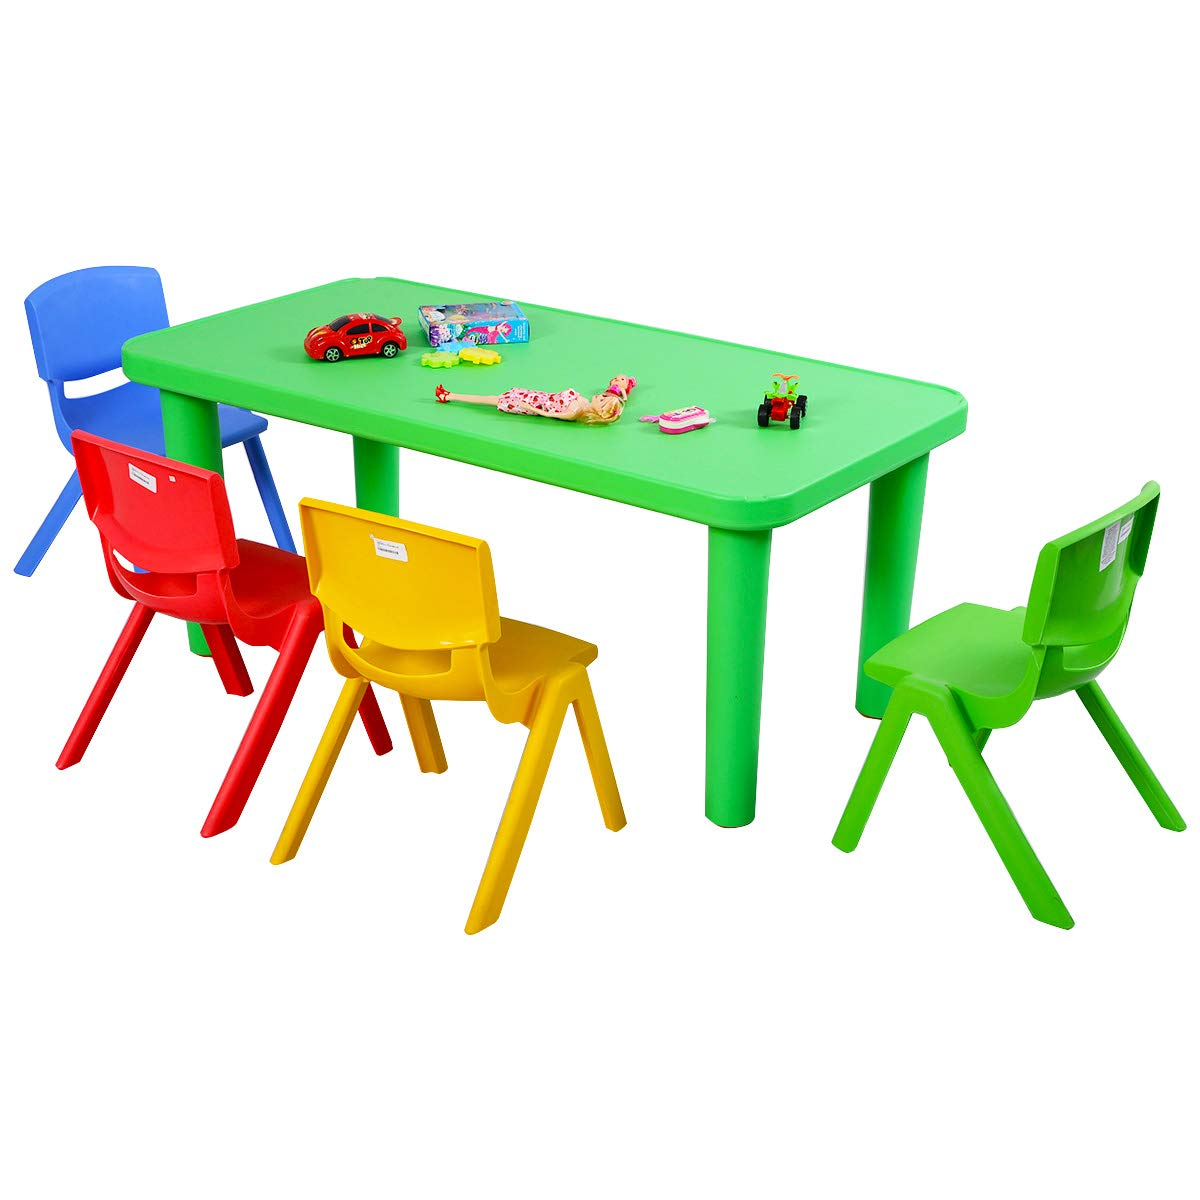 Astonishing Costzon Kids Table And Chair Set Plastic Learn And Play Activity Set Colorful Stackable Chairs Portable Table For School Home Play Room Table 4 Camellatalisay Diy Chair Ideas Camellatalisaycom